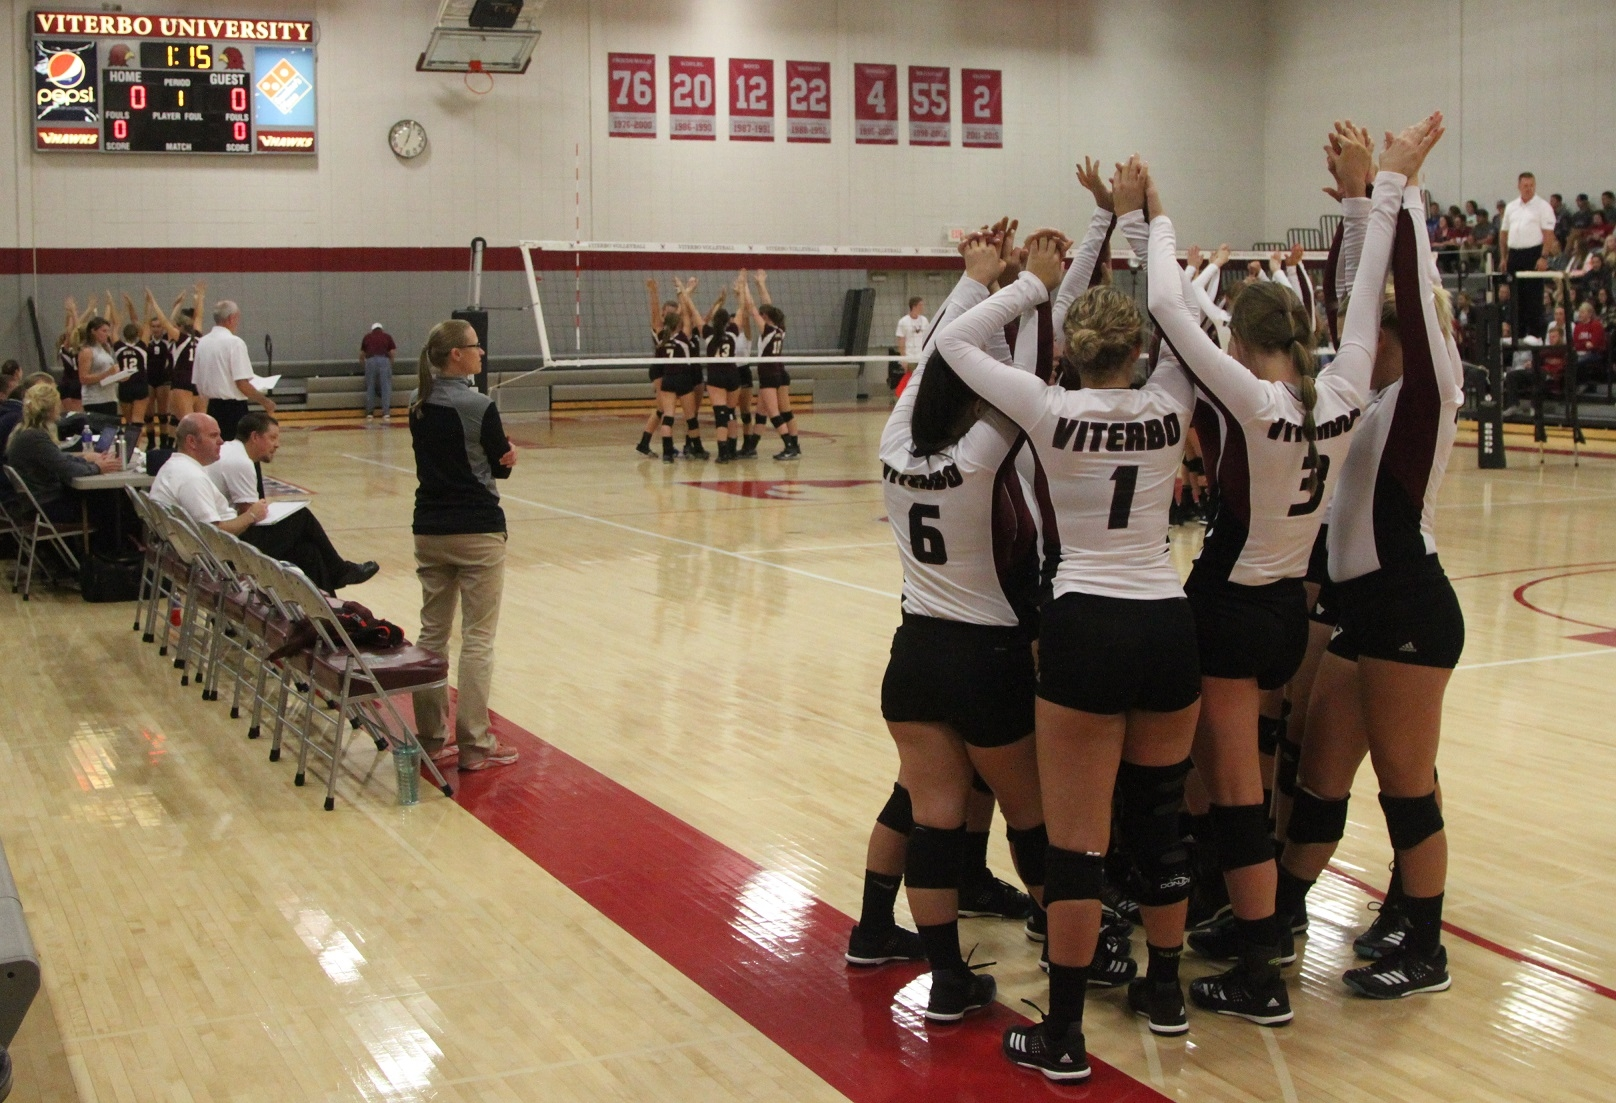 Viterbo looks for 64th consecutive home win as it hosts conference tourney